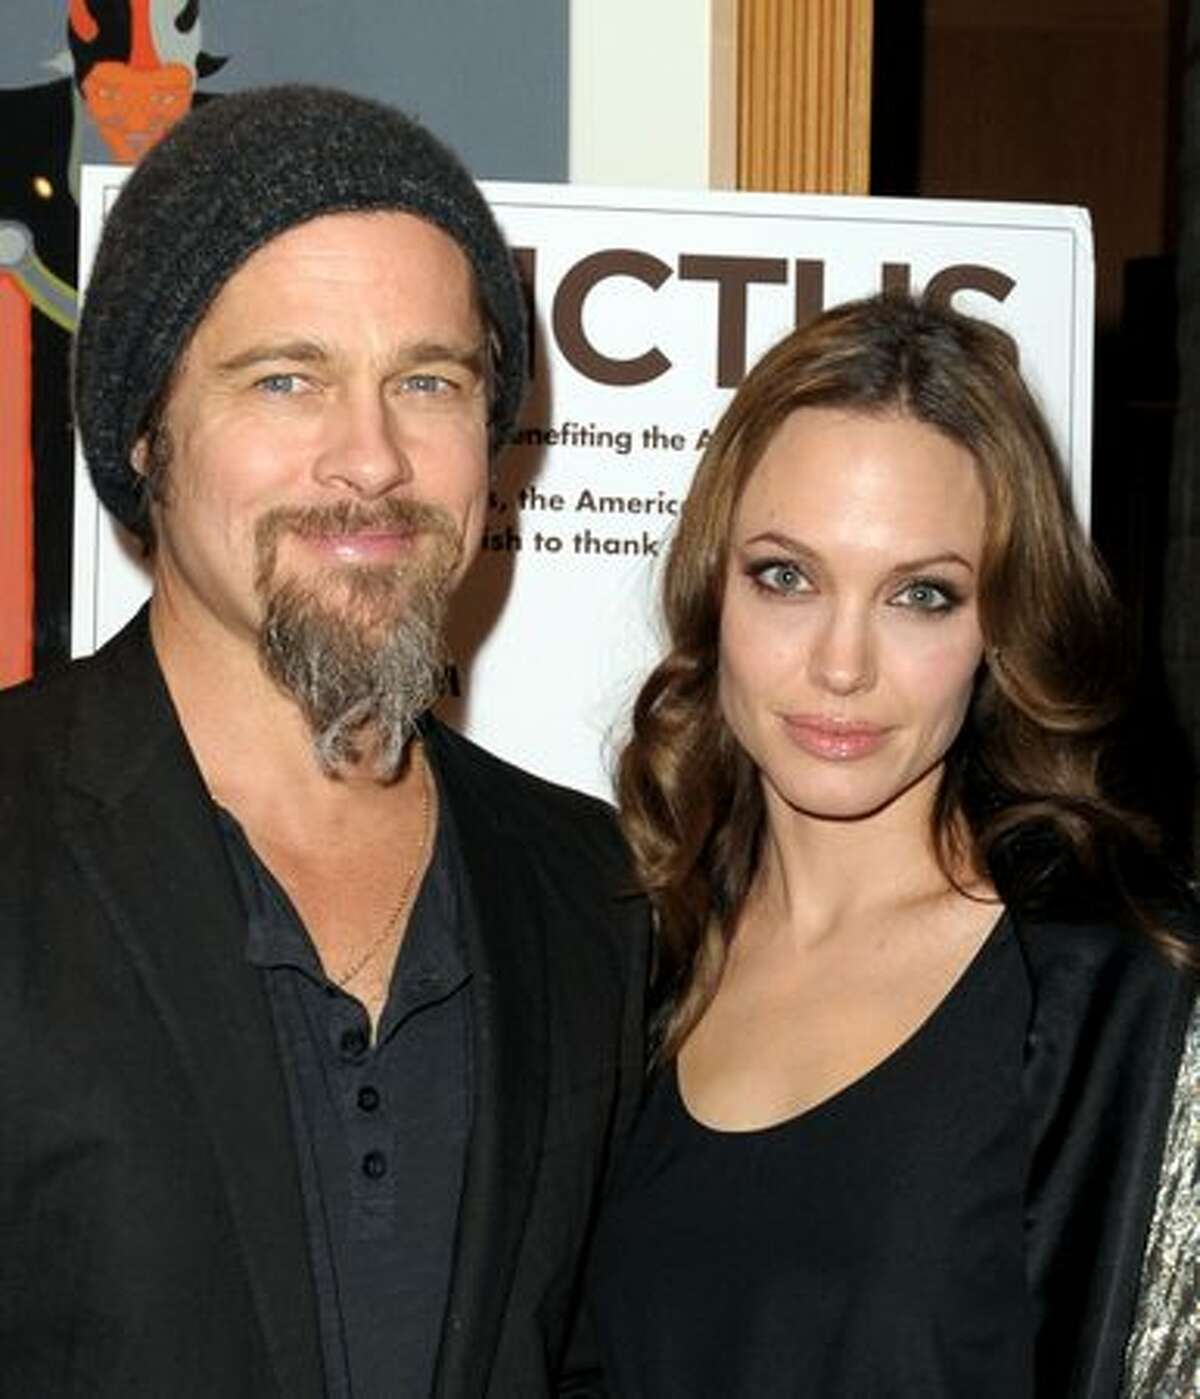 Actors Brad Pitt (L) and Angelina Jolie arrive at the premiere of Warner Bros. Pictures' and Spyglass Entertainment's